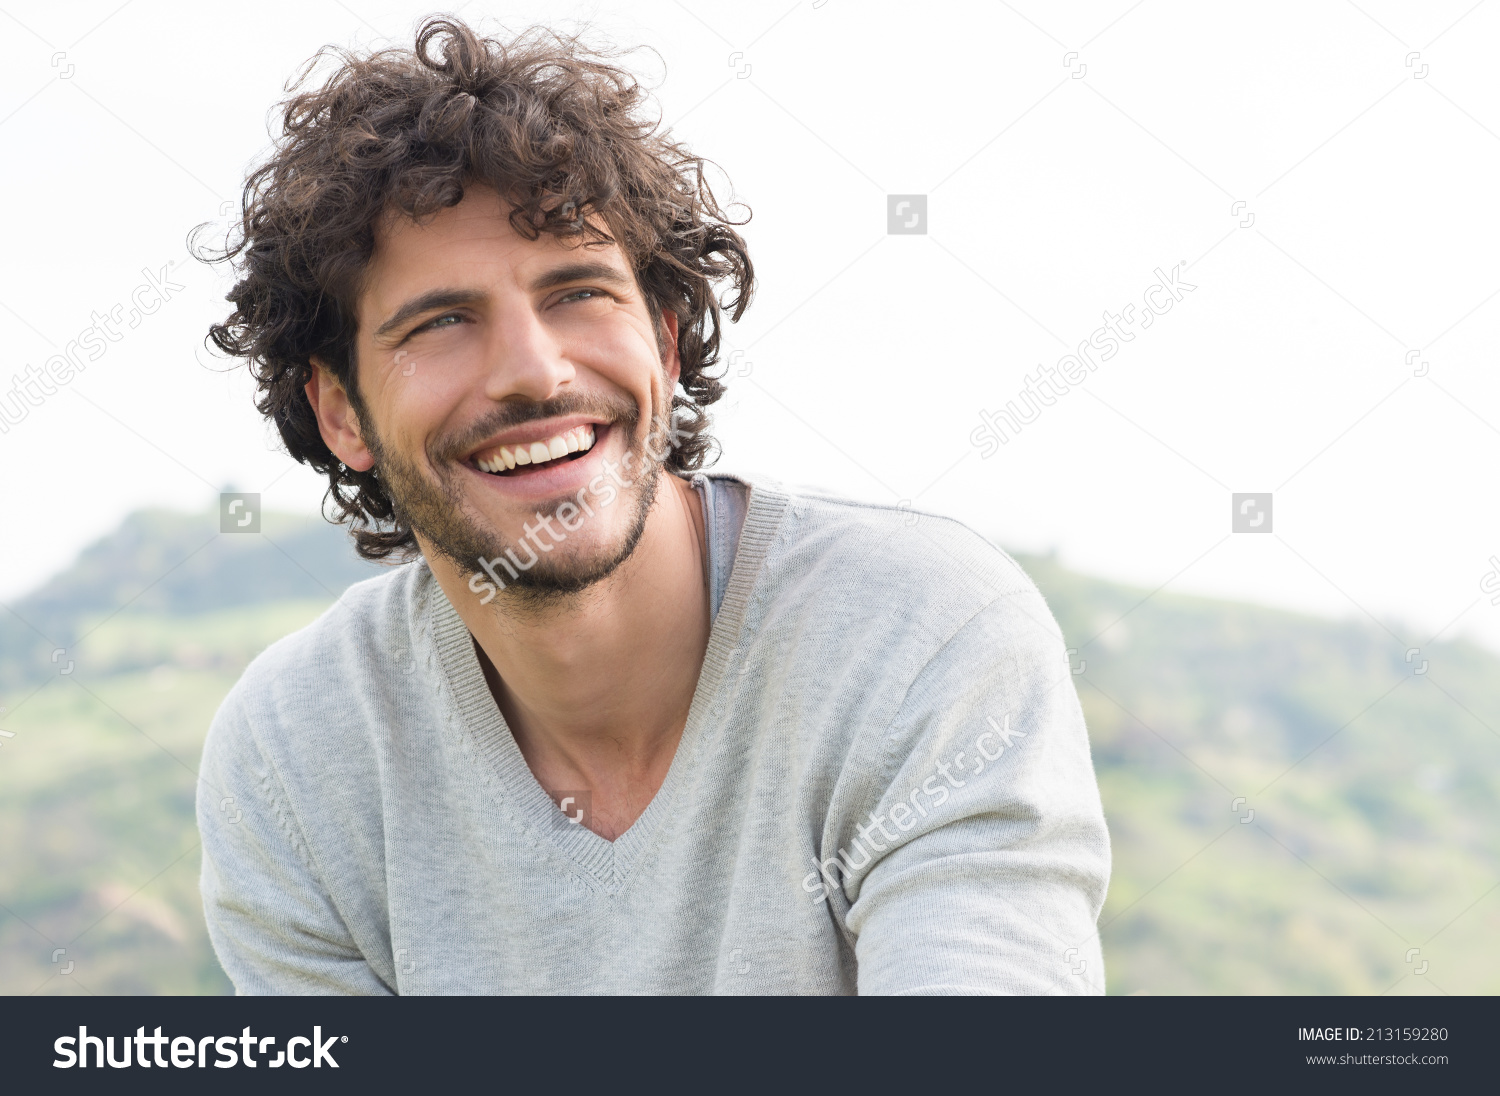 stock-photo-portrait-of-young-handsome-man-smiling-outdoor-213159280